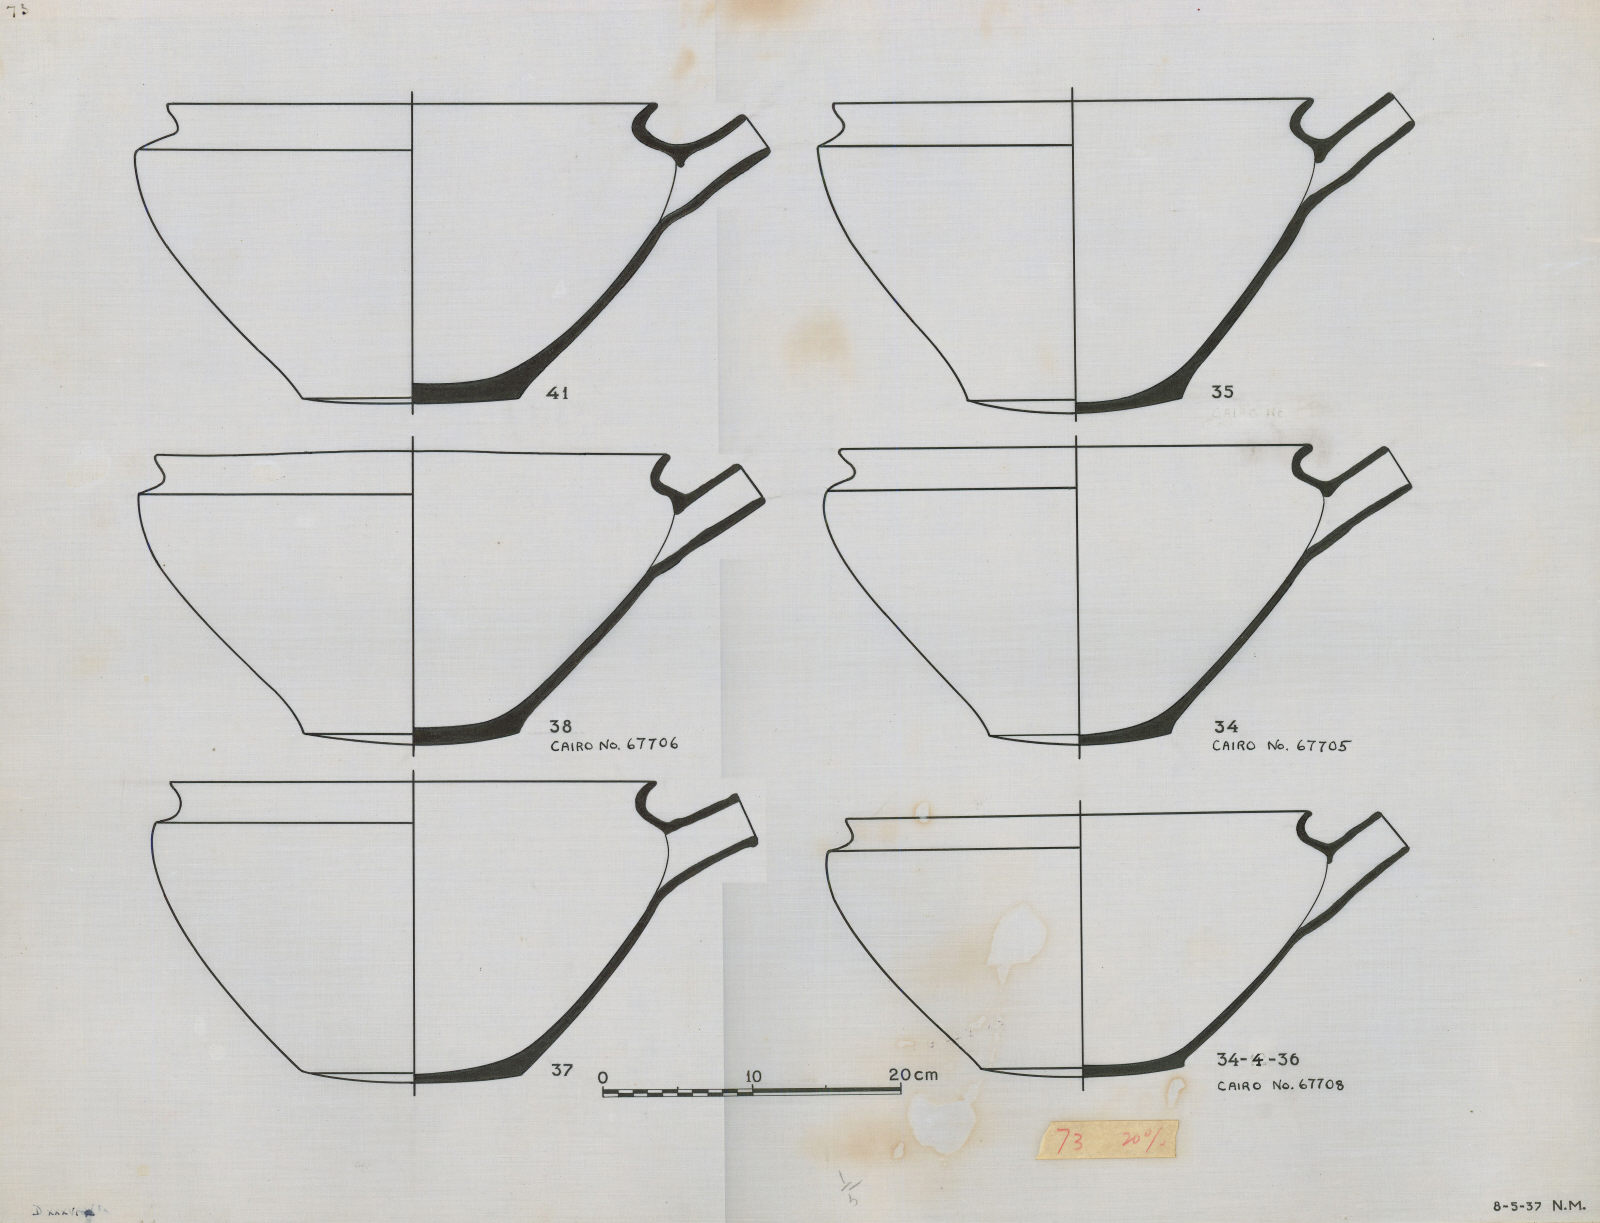 Drawings: G 7000 X: pottery, bowls recurved rim and spout